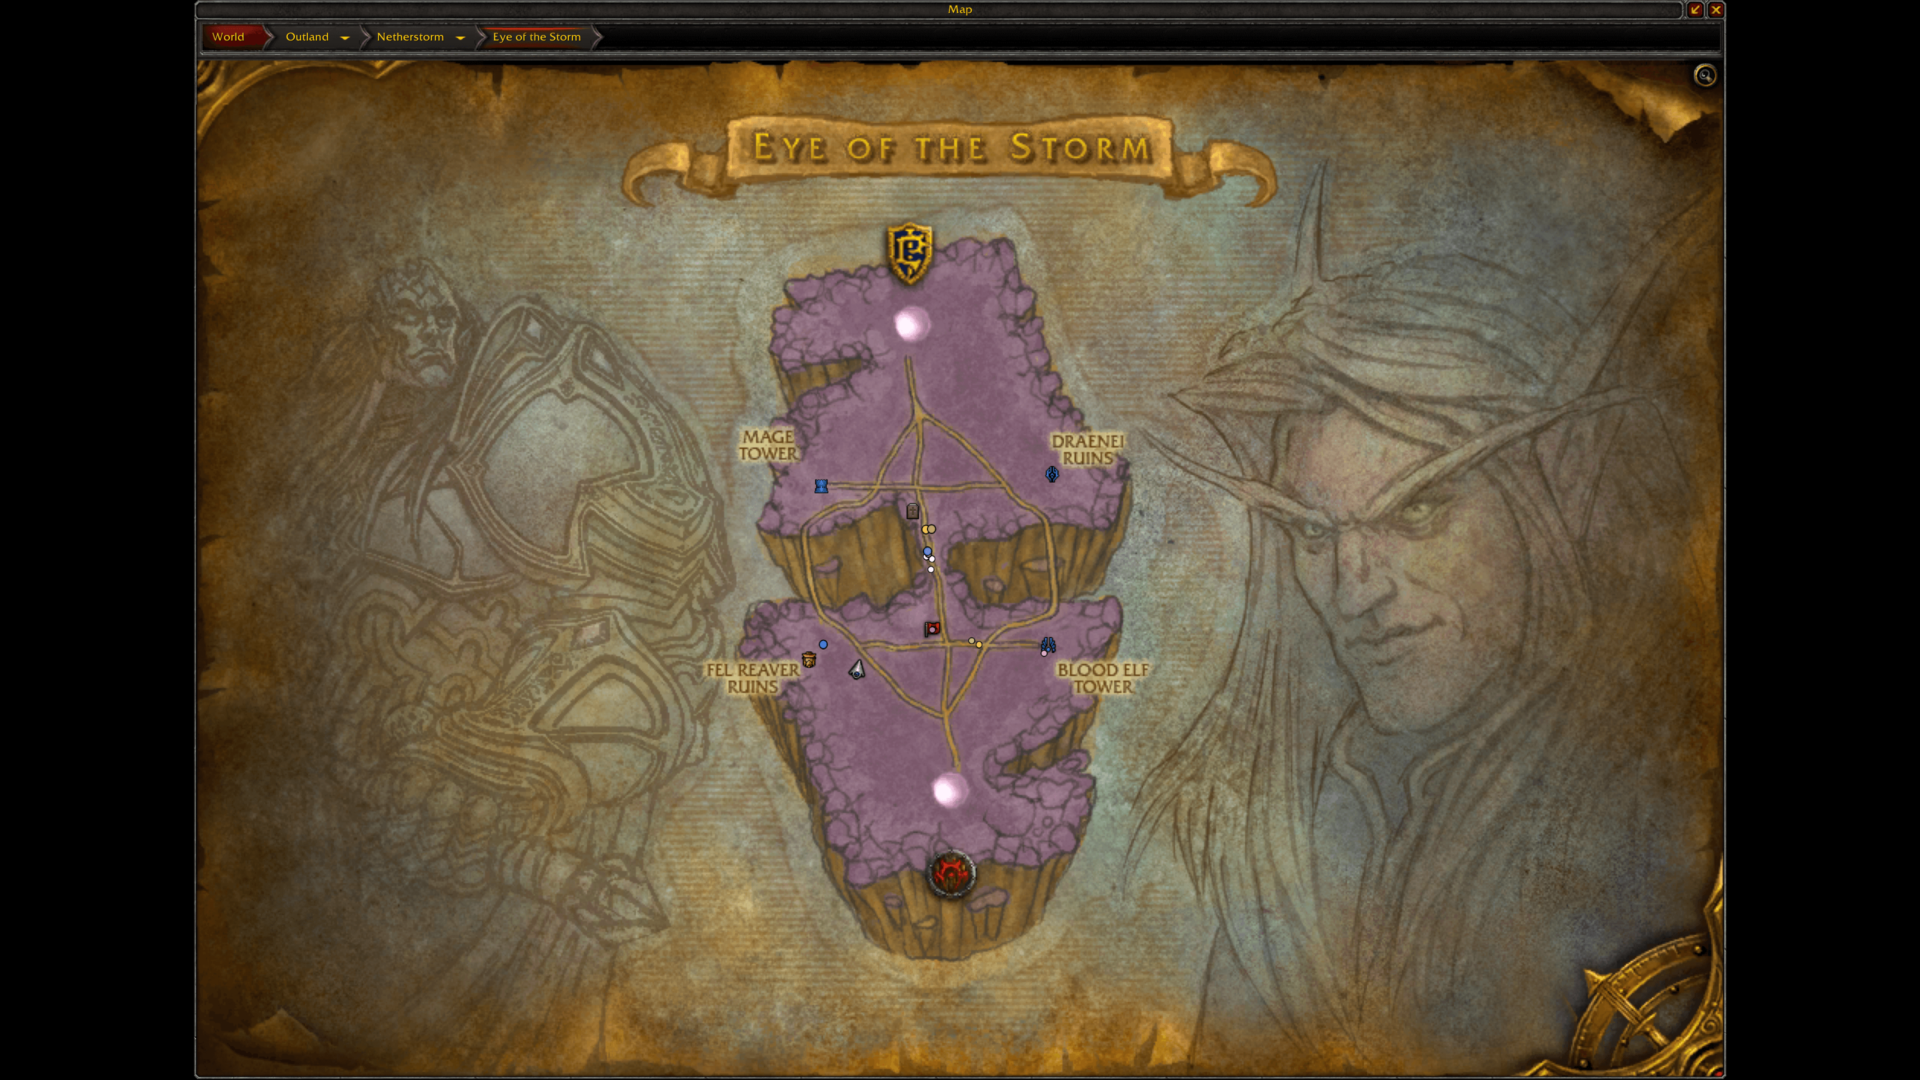 Eye of the storm screenshot of World of Warcraft video game interface.